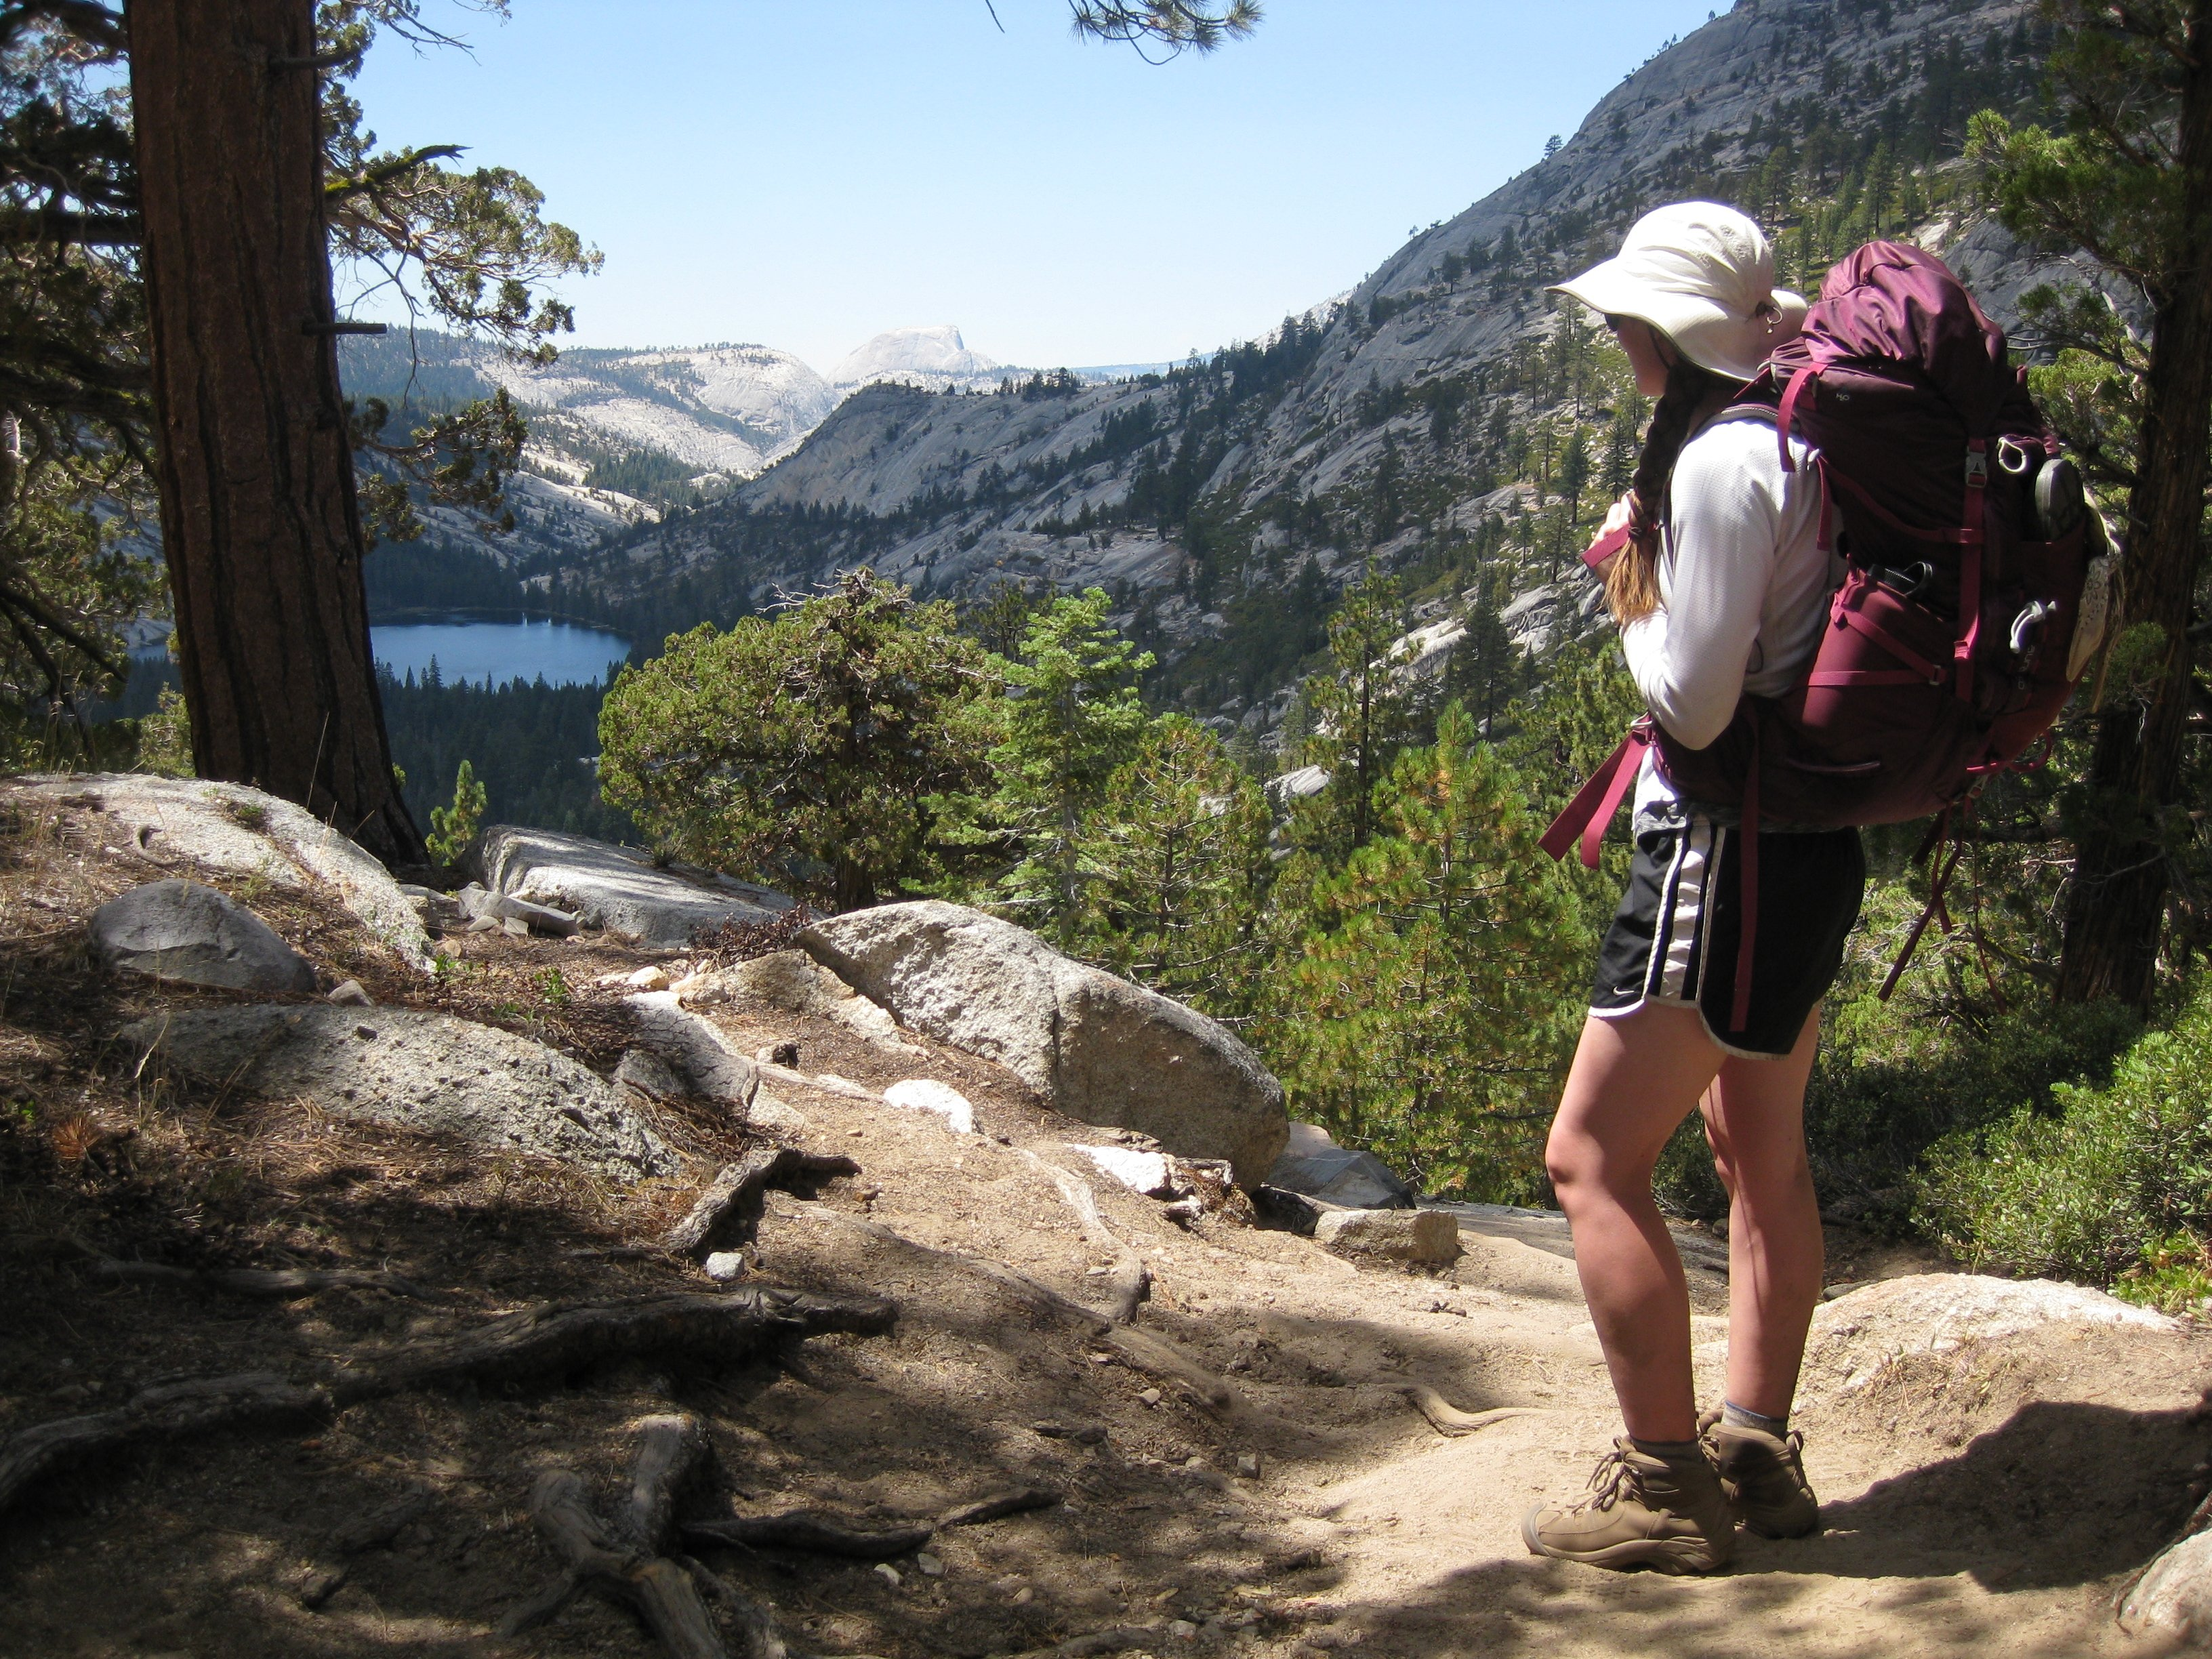 Land_Outdoor_Alliance_Tania_Osprey_Packs_Public_lands